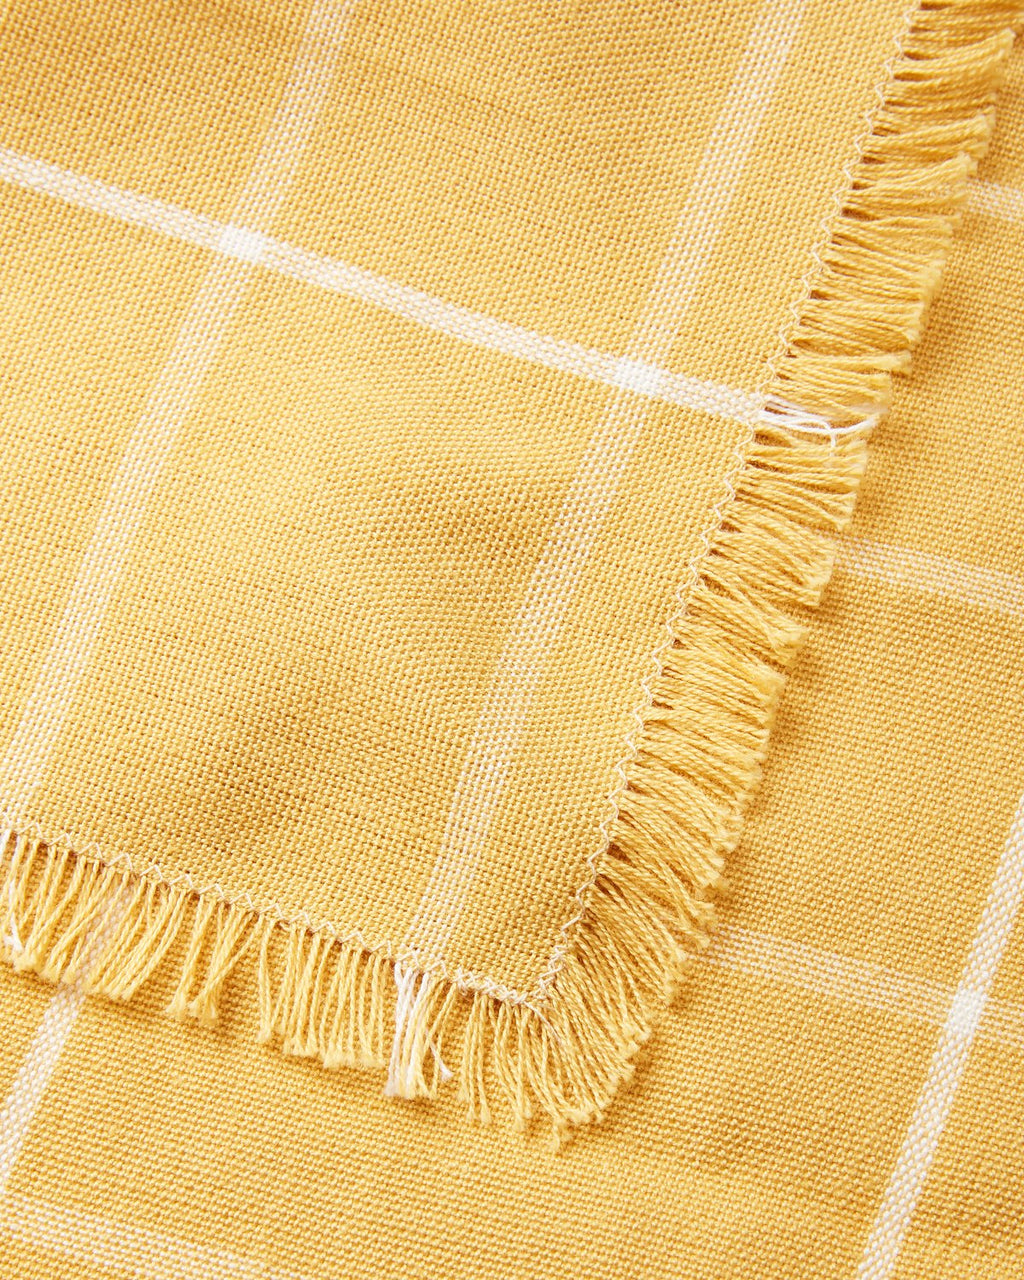 Gold Grid Napkin Set